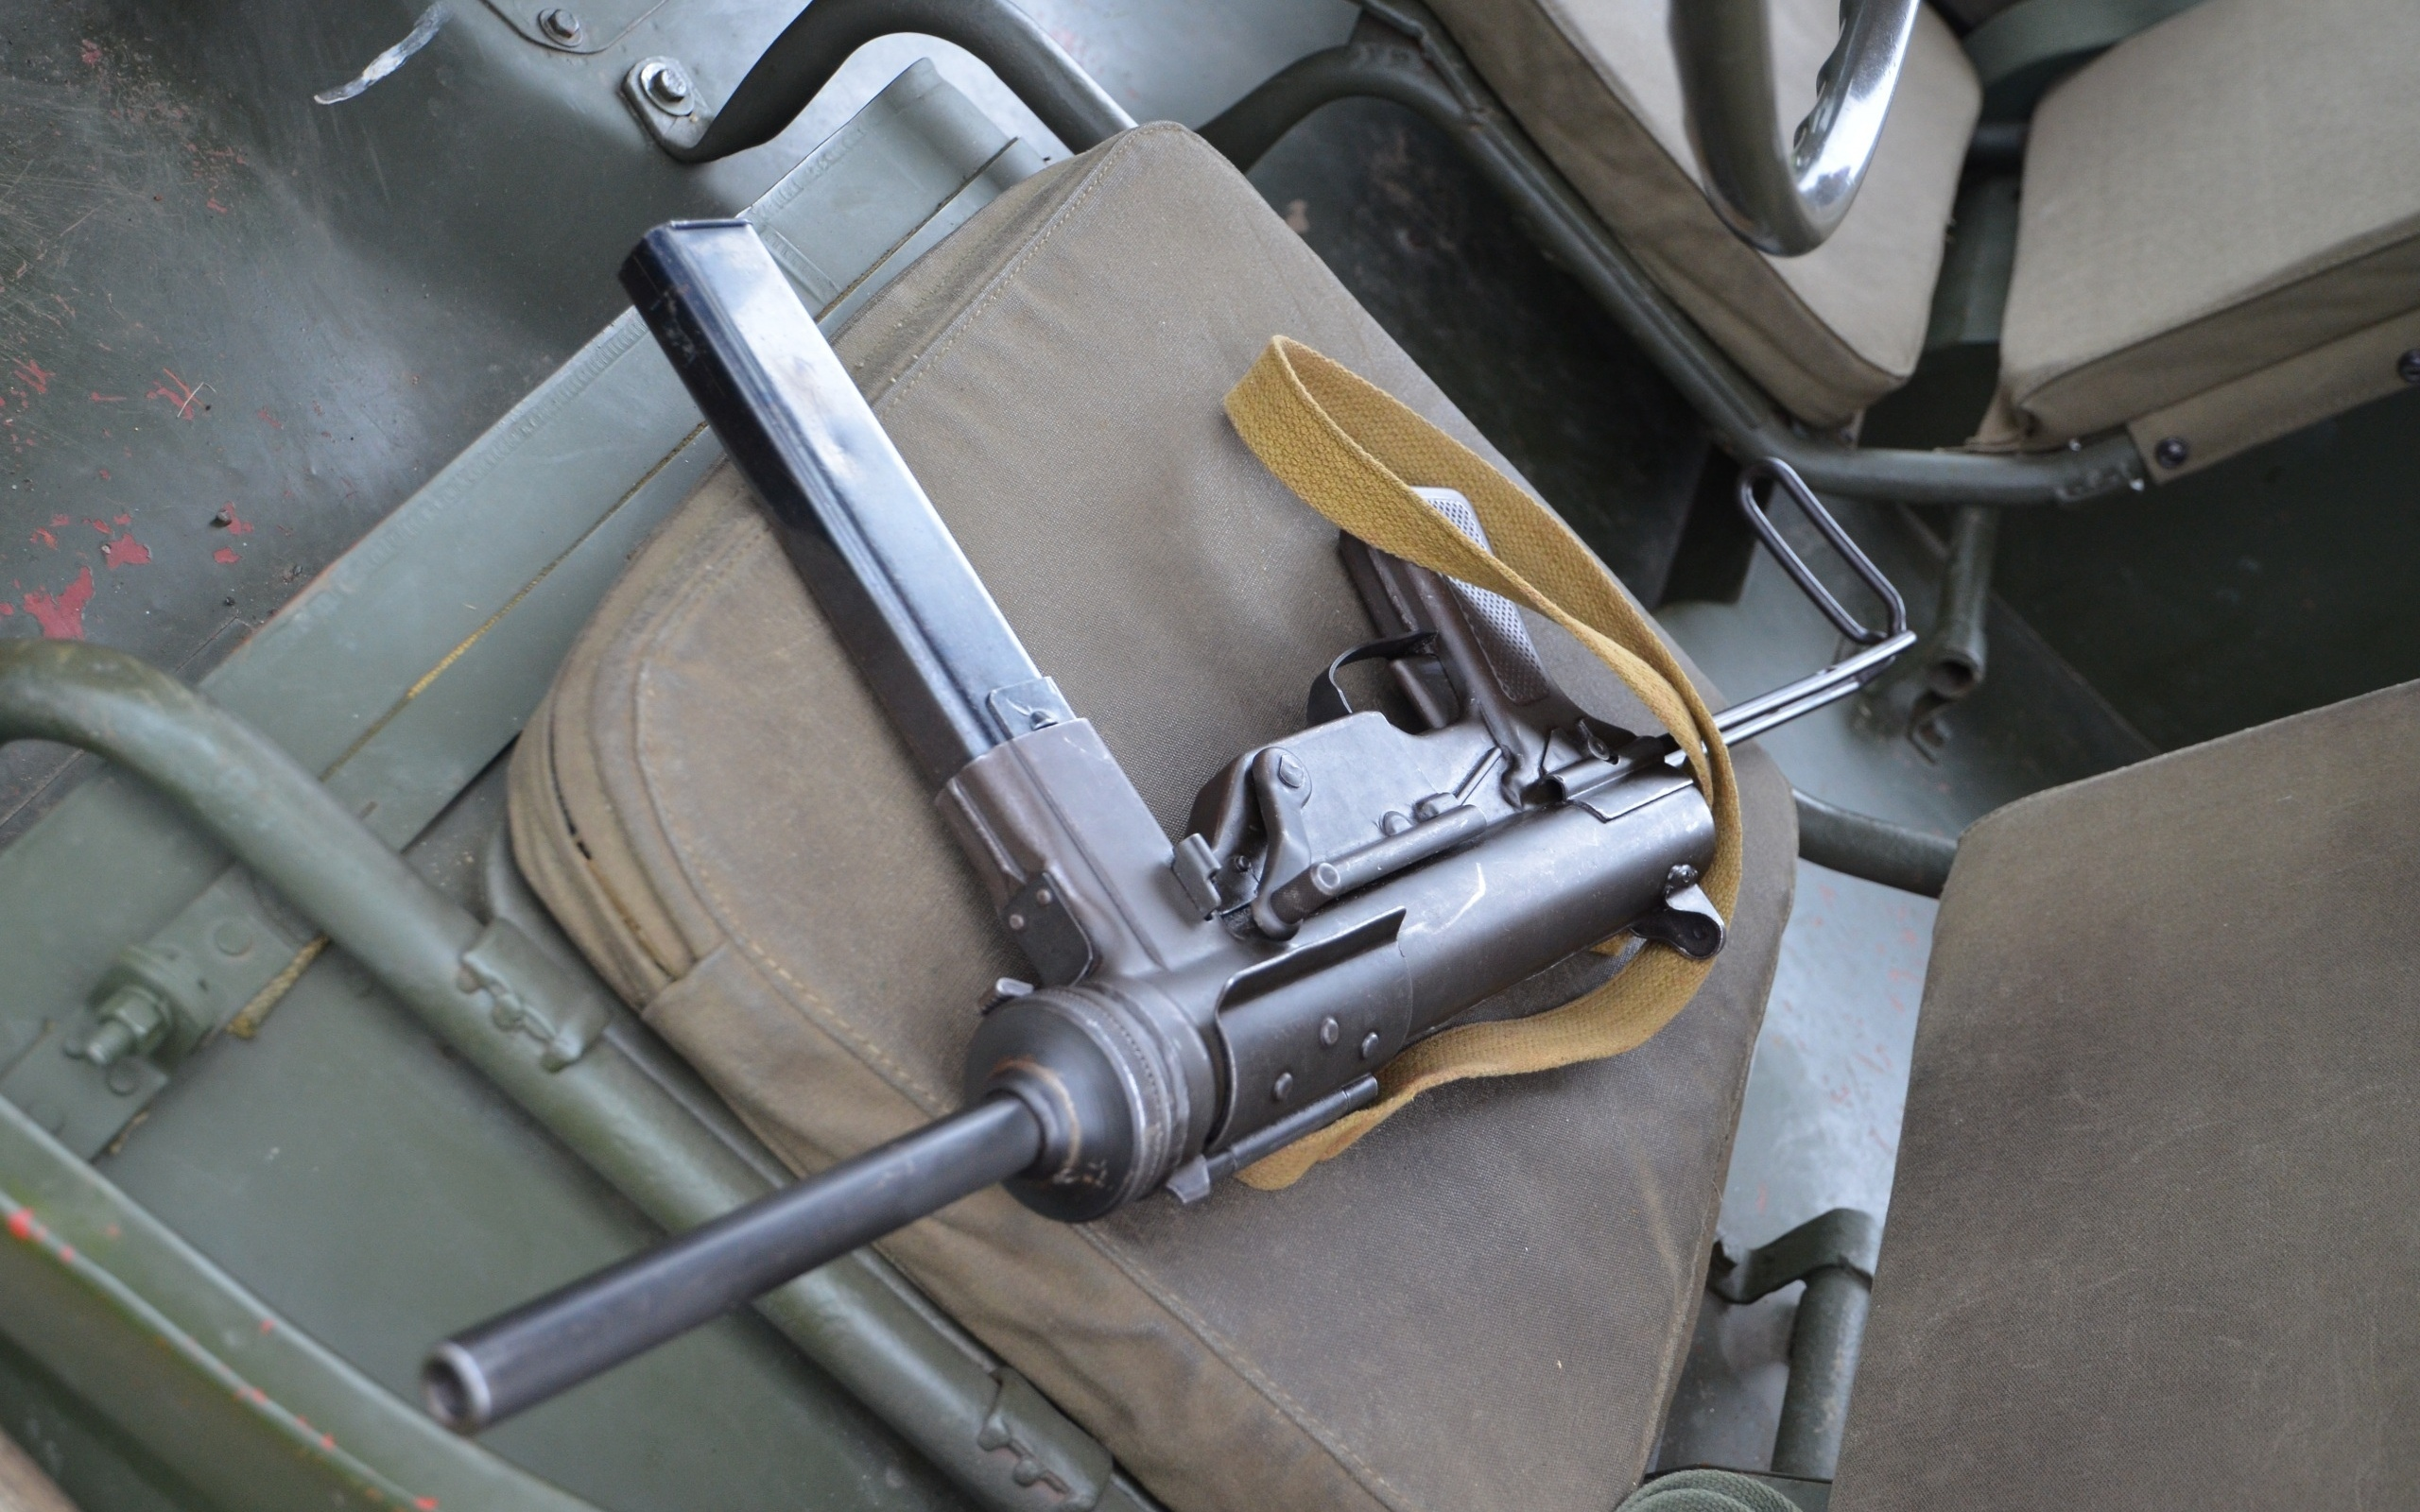 пистолет пулемёт, м3, submachine gun, grease gun, 45 acp